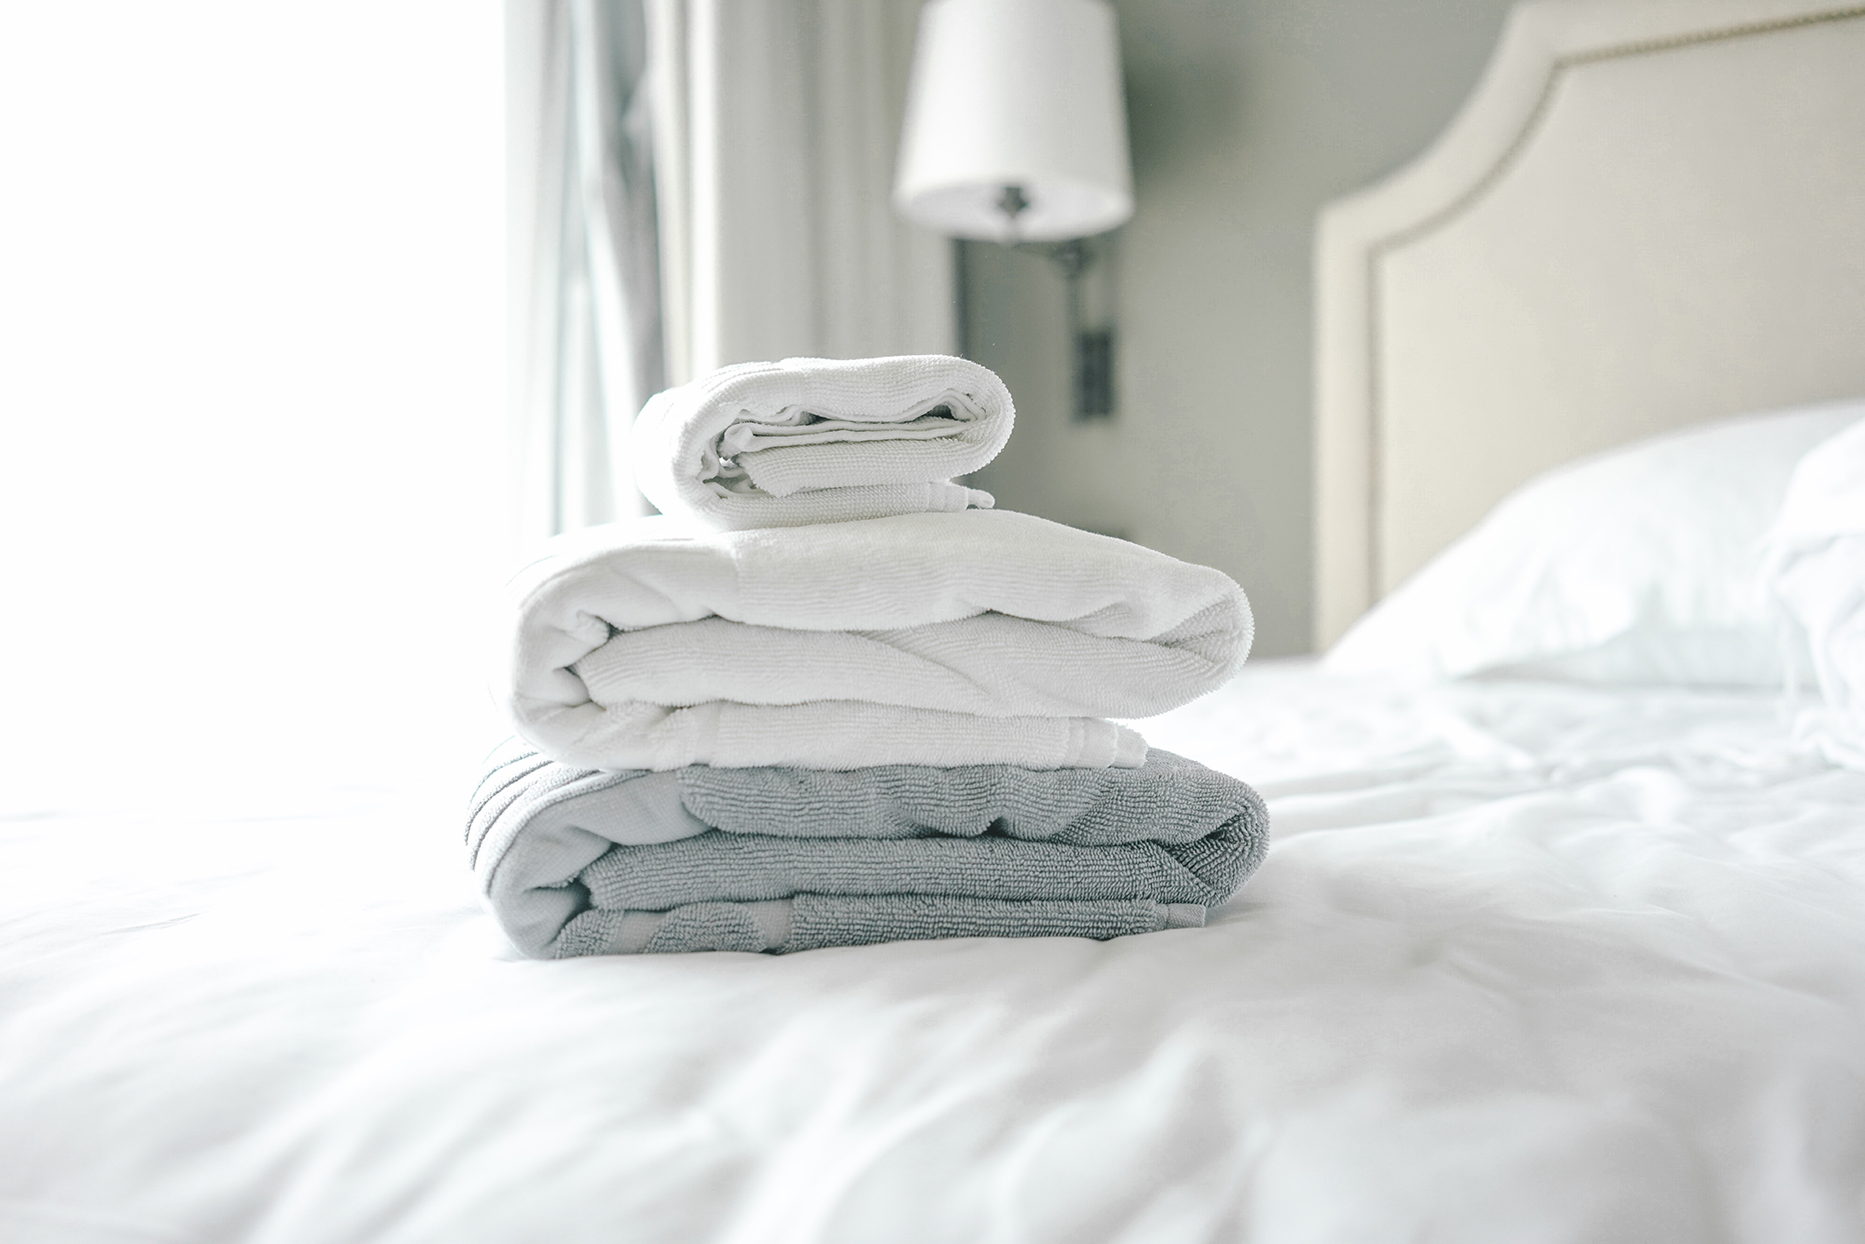 stack of light colored towels on bed